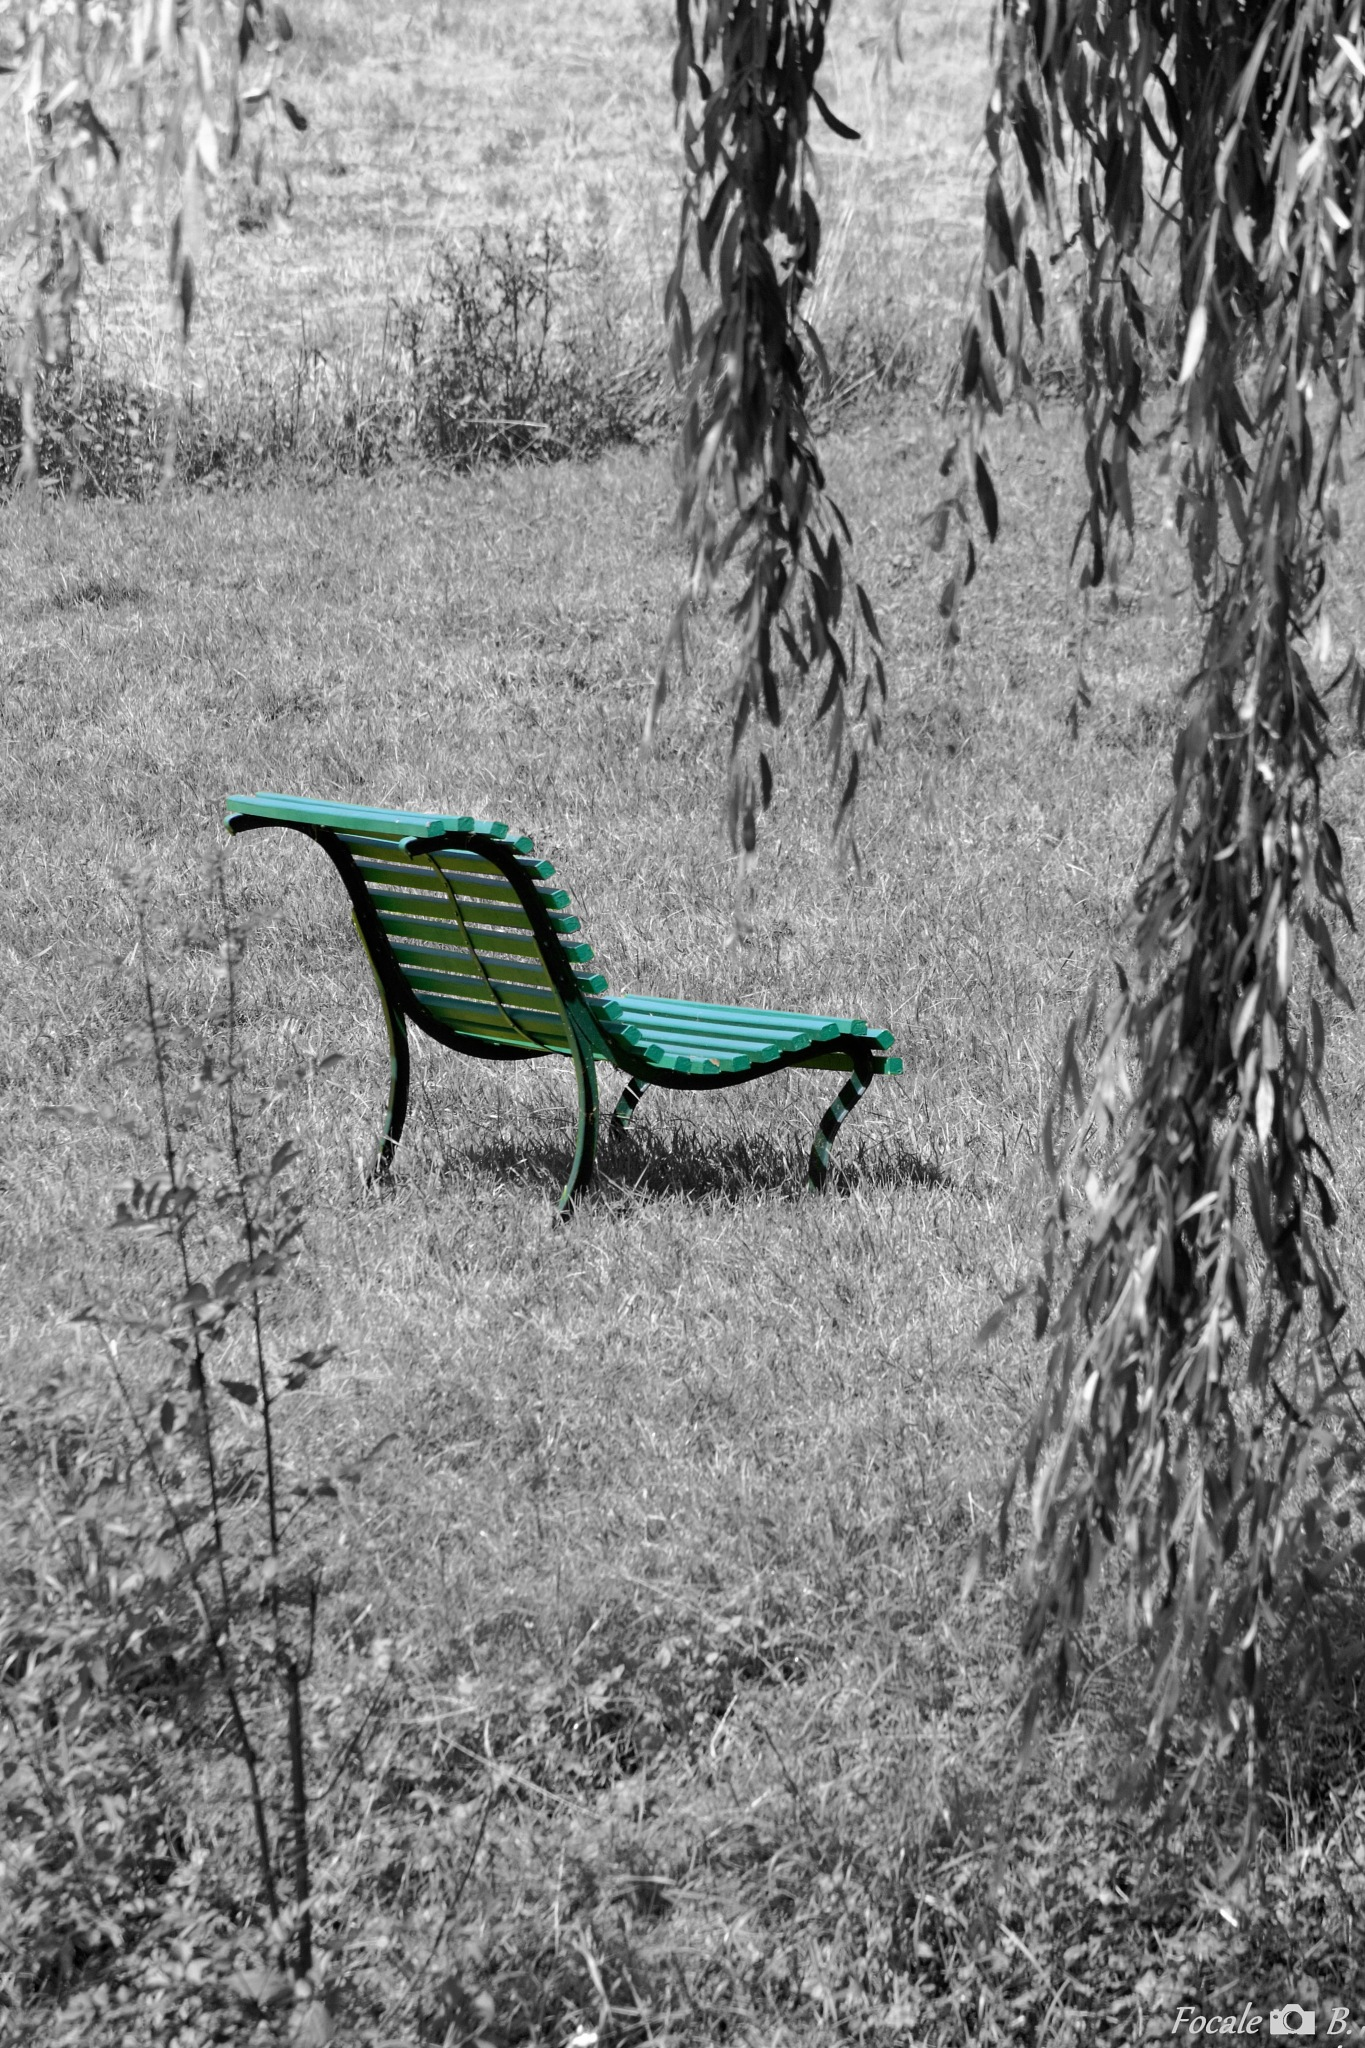 The green bench by Focale B.